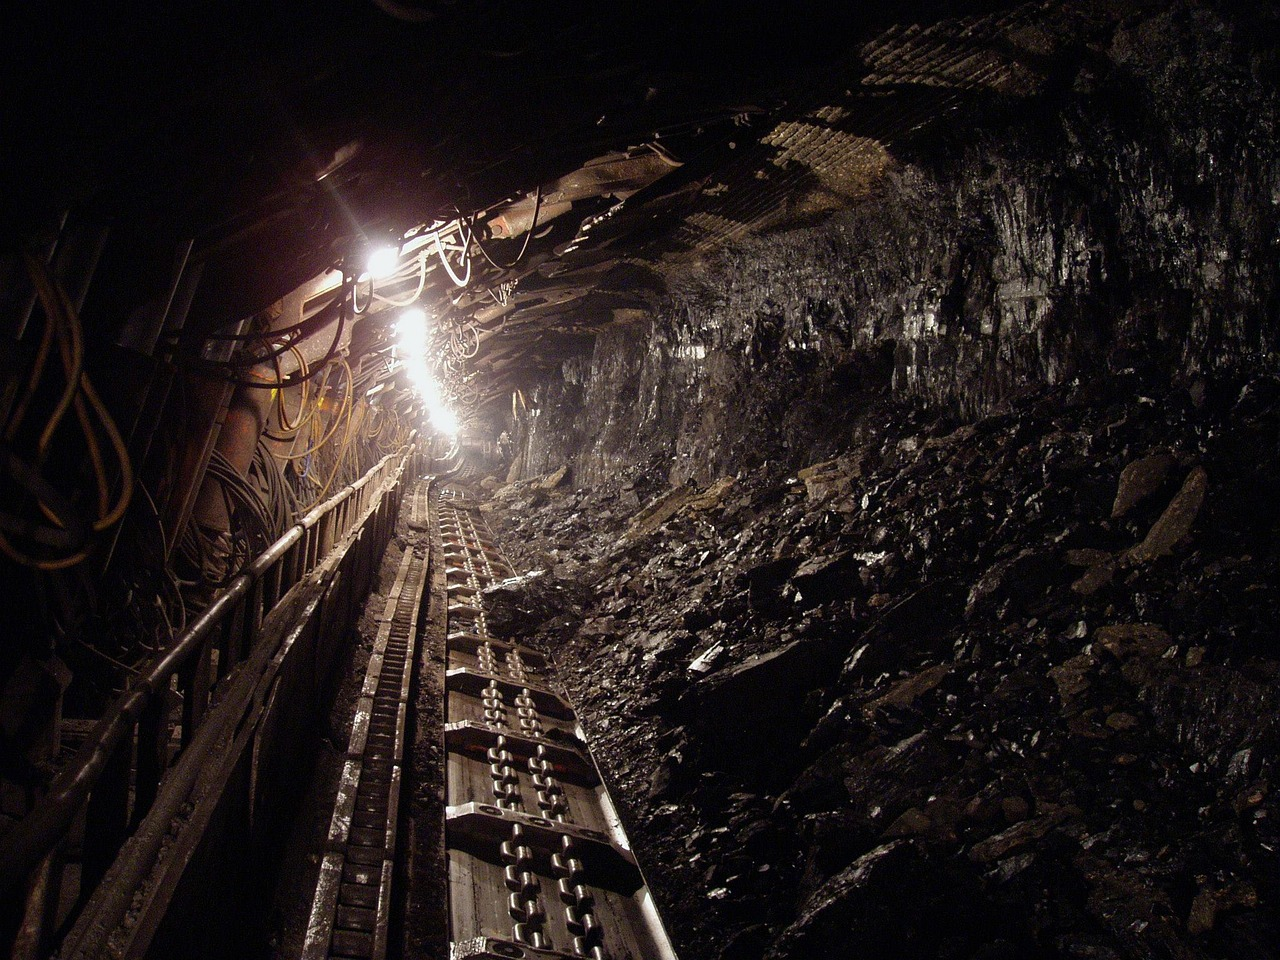 Mine Another Company Granted Permission To Mine Coal In Hwange